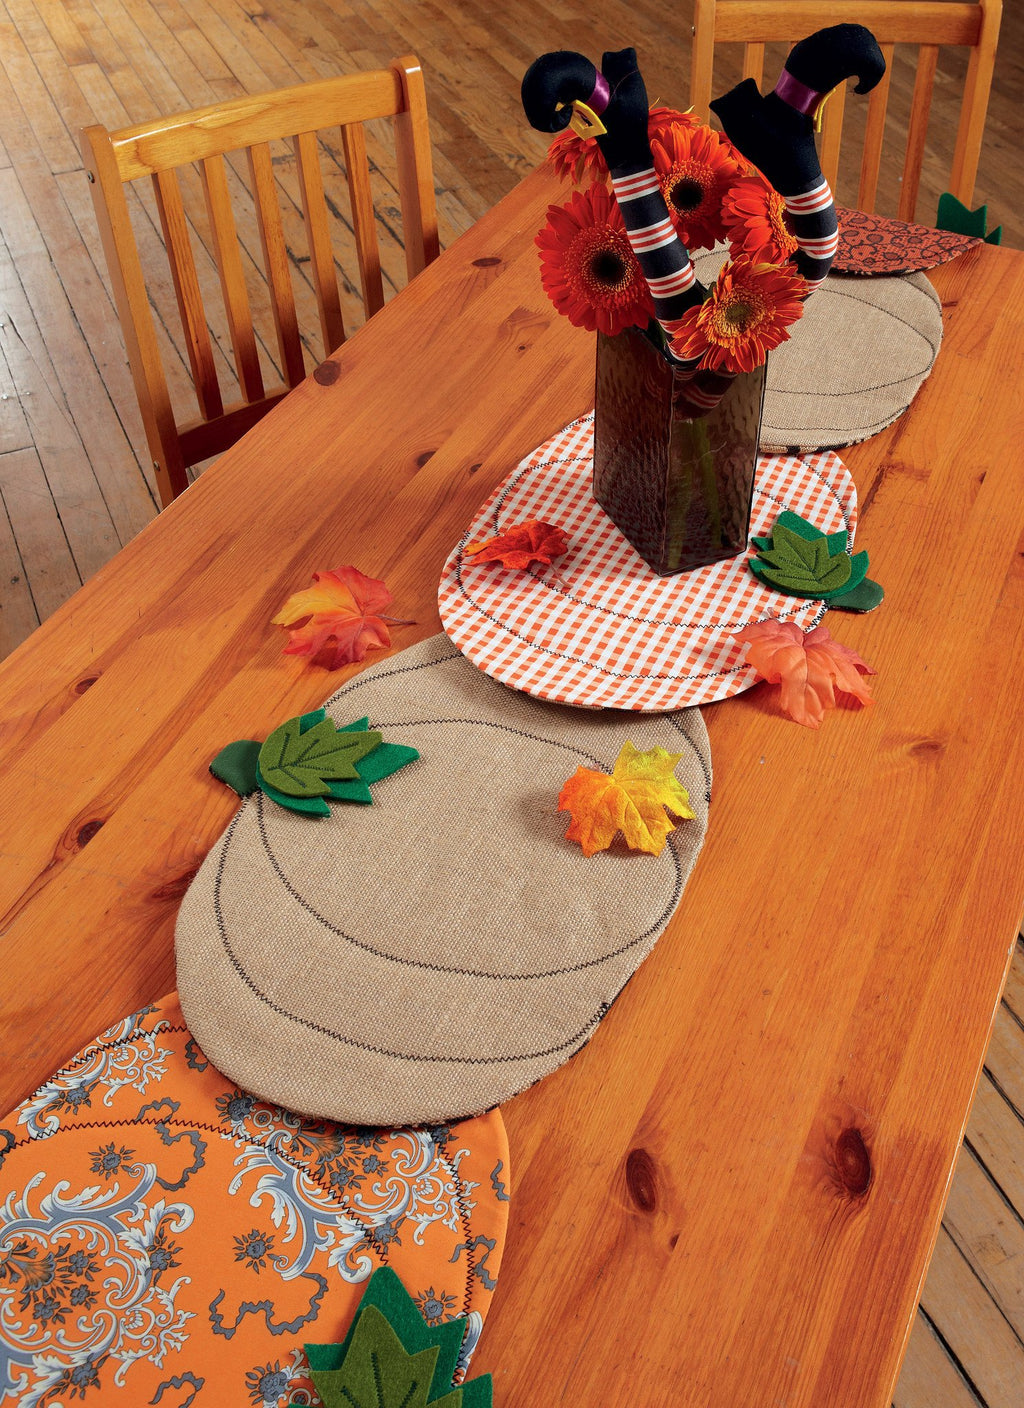 M7490 Pumpkin Placemats/Table Runner, Witch Hat/Legs, and Wreaths